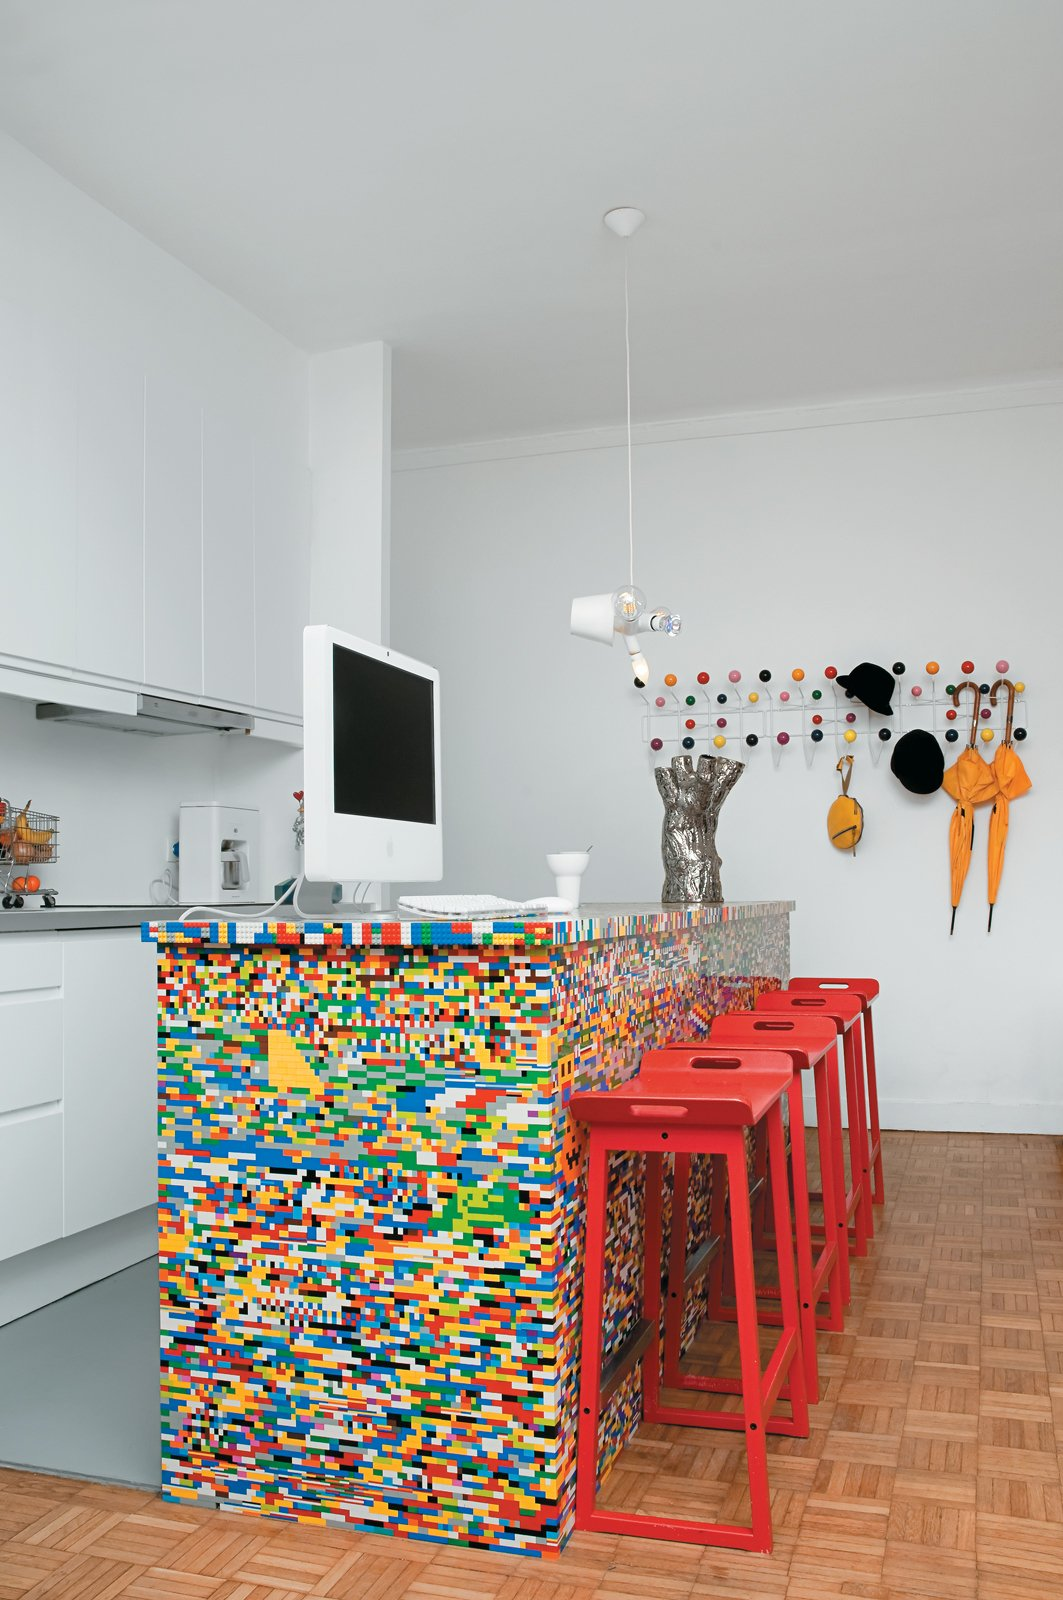 Kitchen, White Cabinet, Medium Hardwood Floor, and Pendant Lighting The idea for Simon Pillard and Philippe Rossetti's Lego kitchen island in Paris sprouted when Pillard put 500 blocks and a day's worth of work into building a Lego-legged chair. They covered their kitchen island—a simple wooden block—with 20,000 Lego pieces.  Super Cool Kitchen Islands by Erika Heet from Lego Island